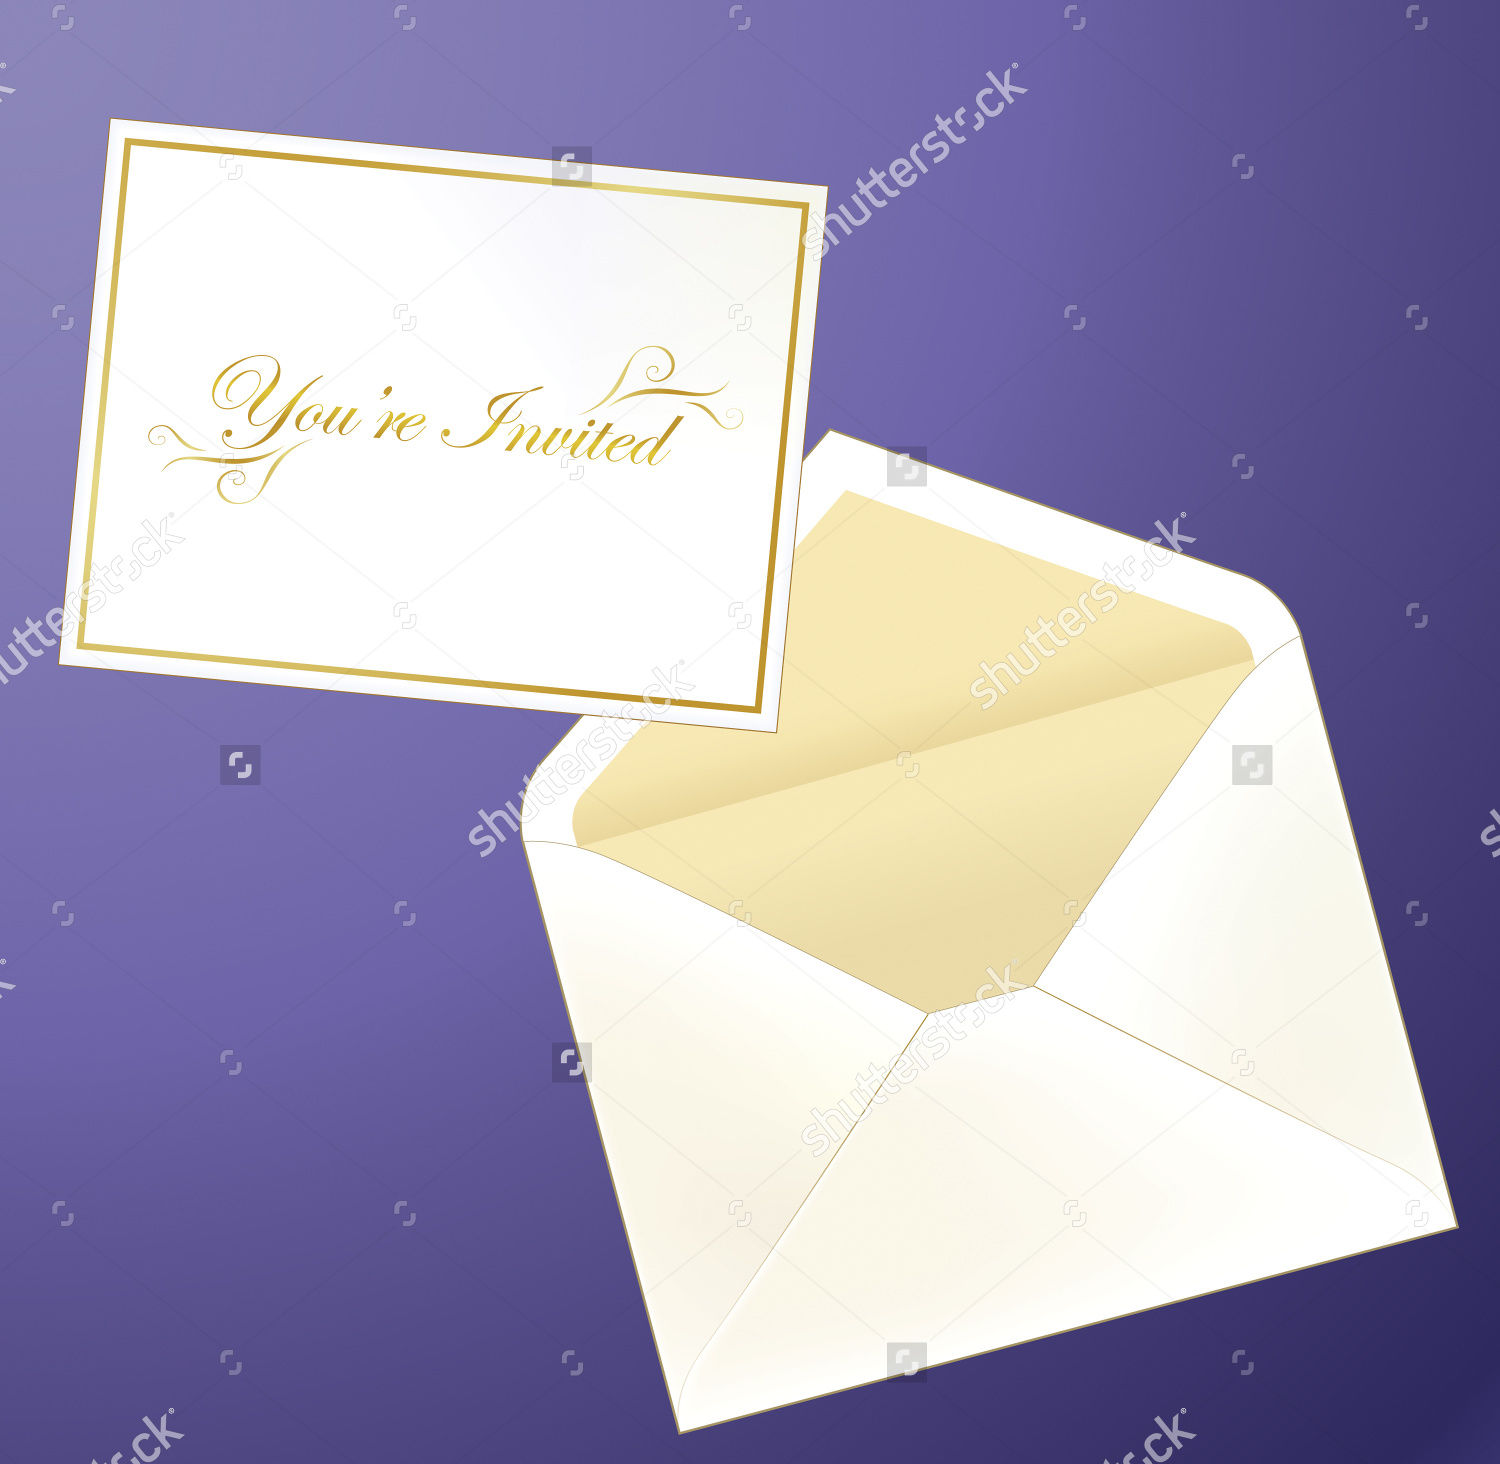 Golf Invitation Card Envelope